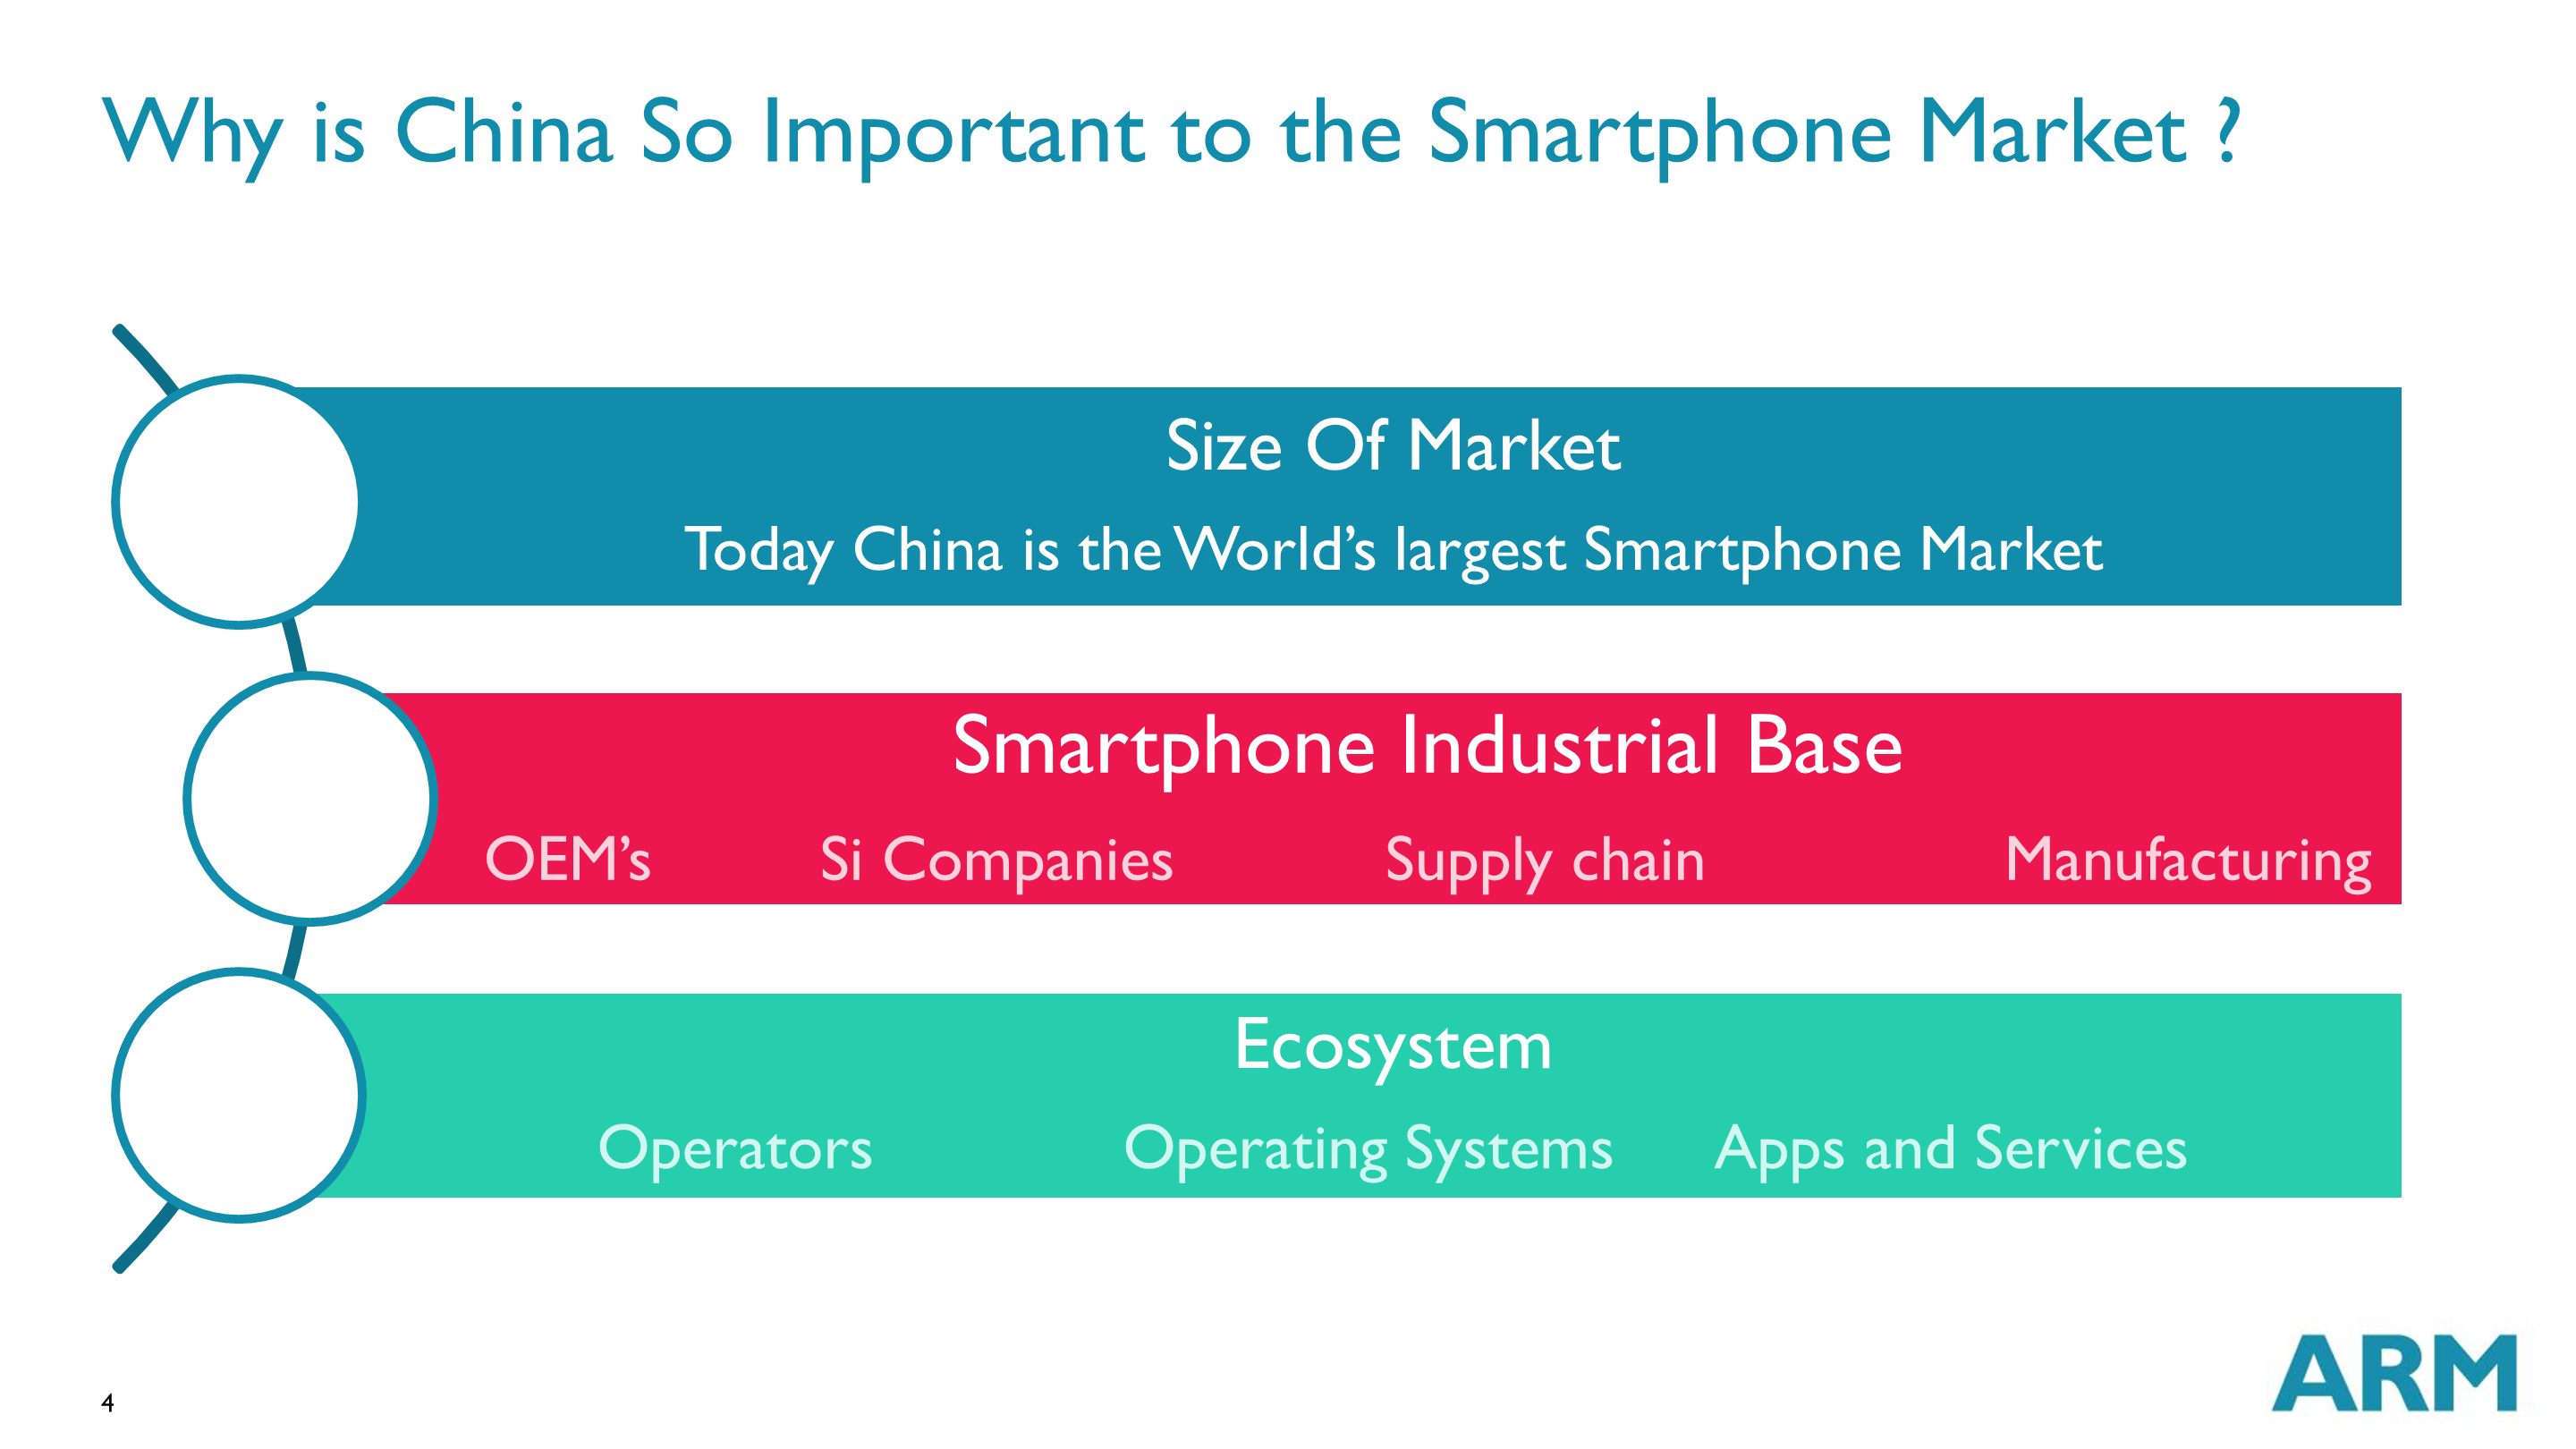 Why is China So Important to the Smartphone Market?